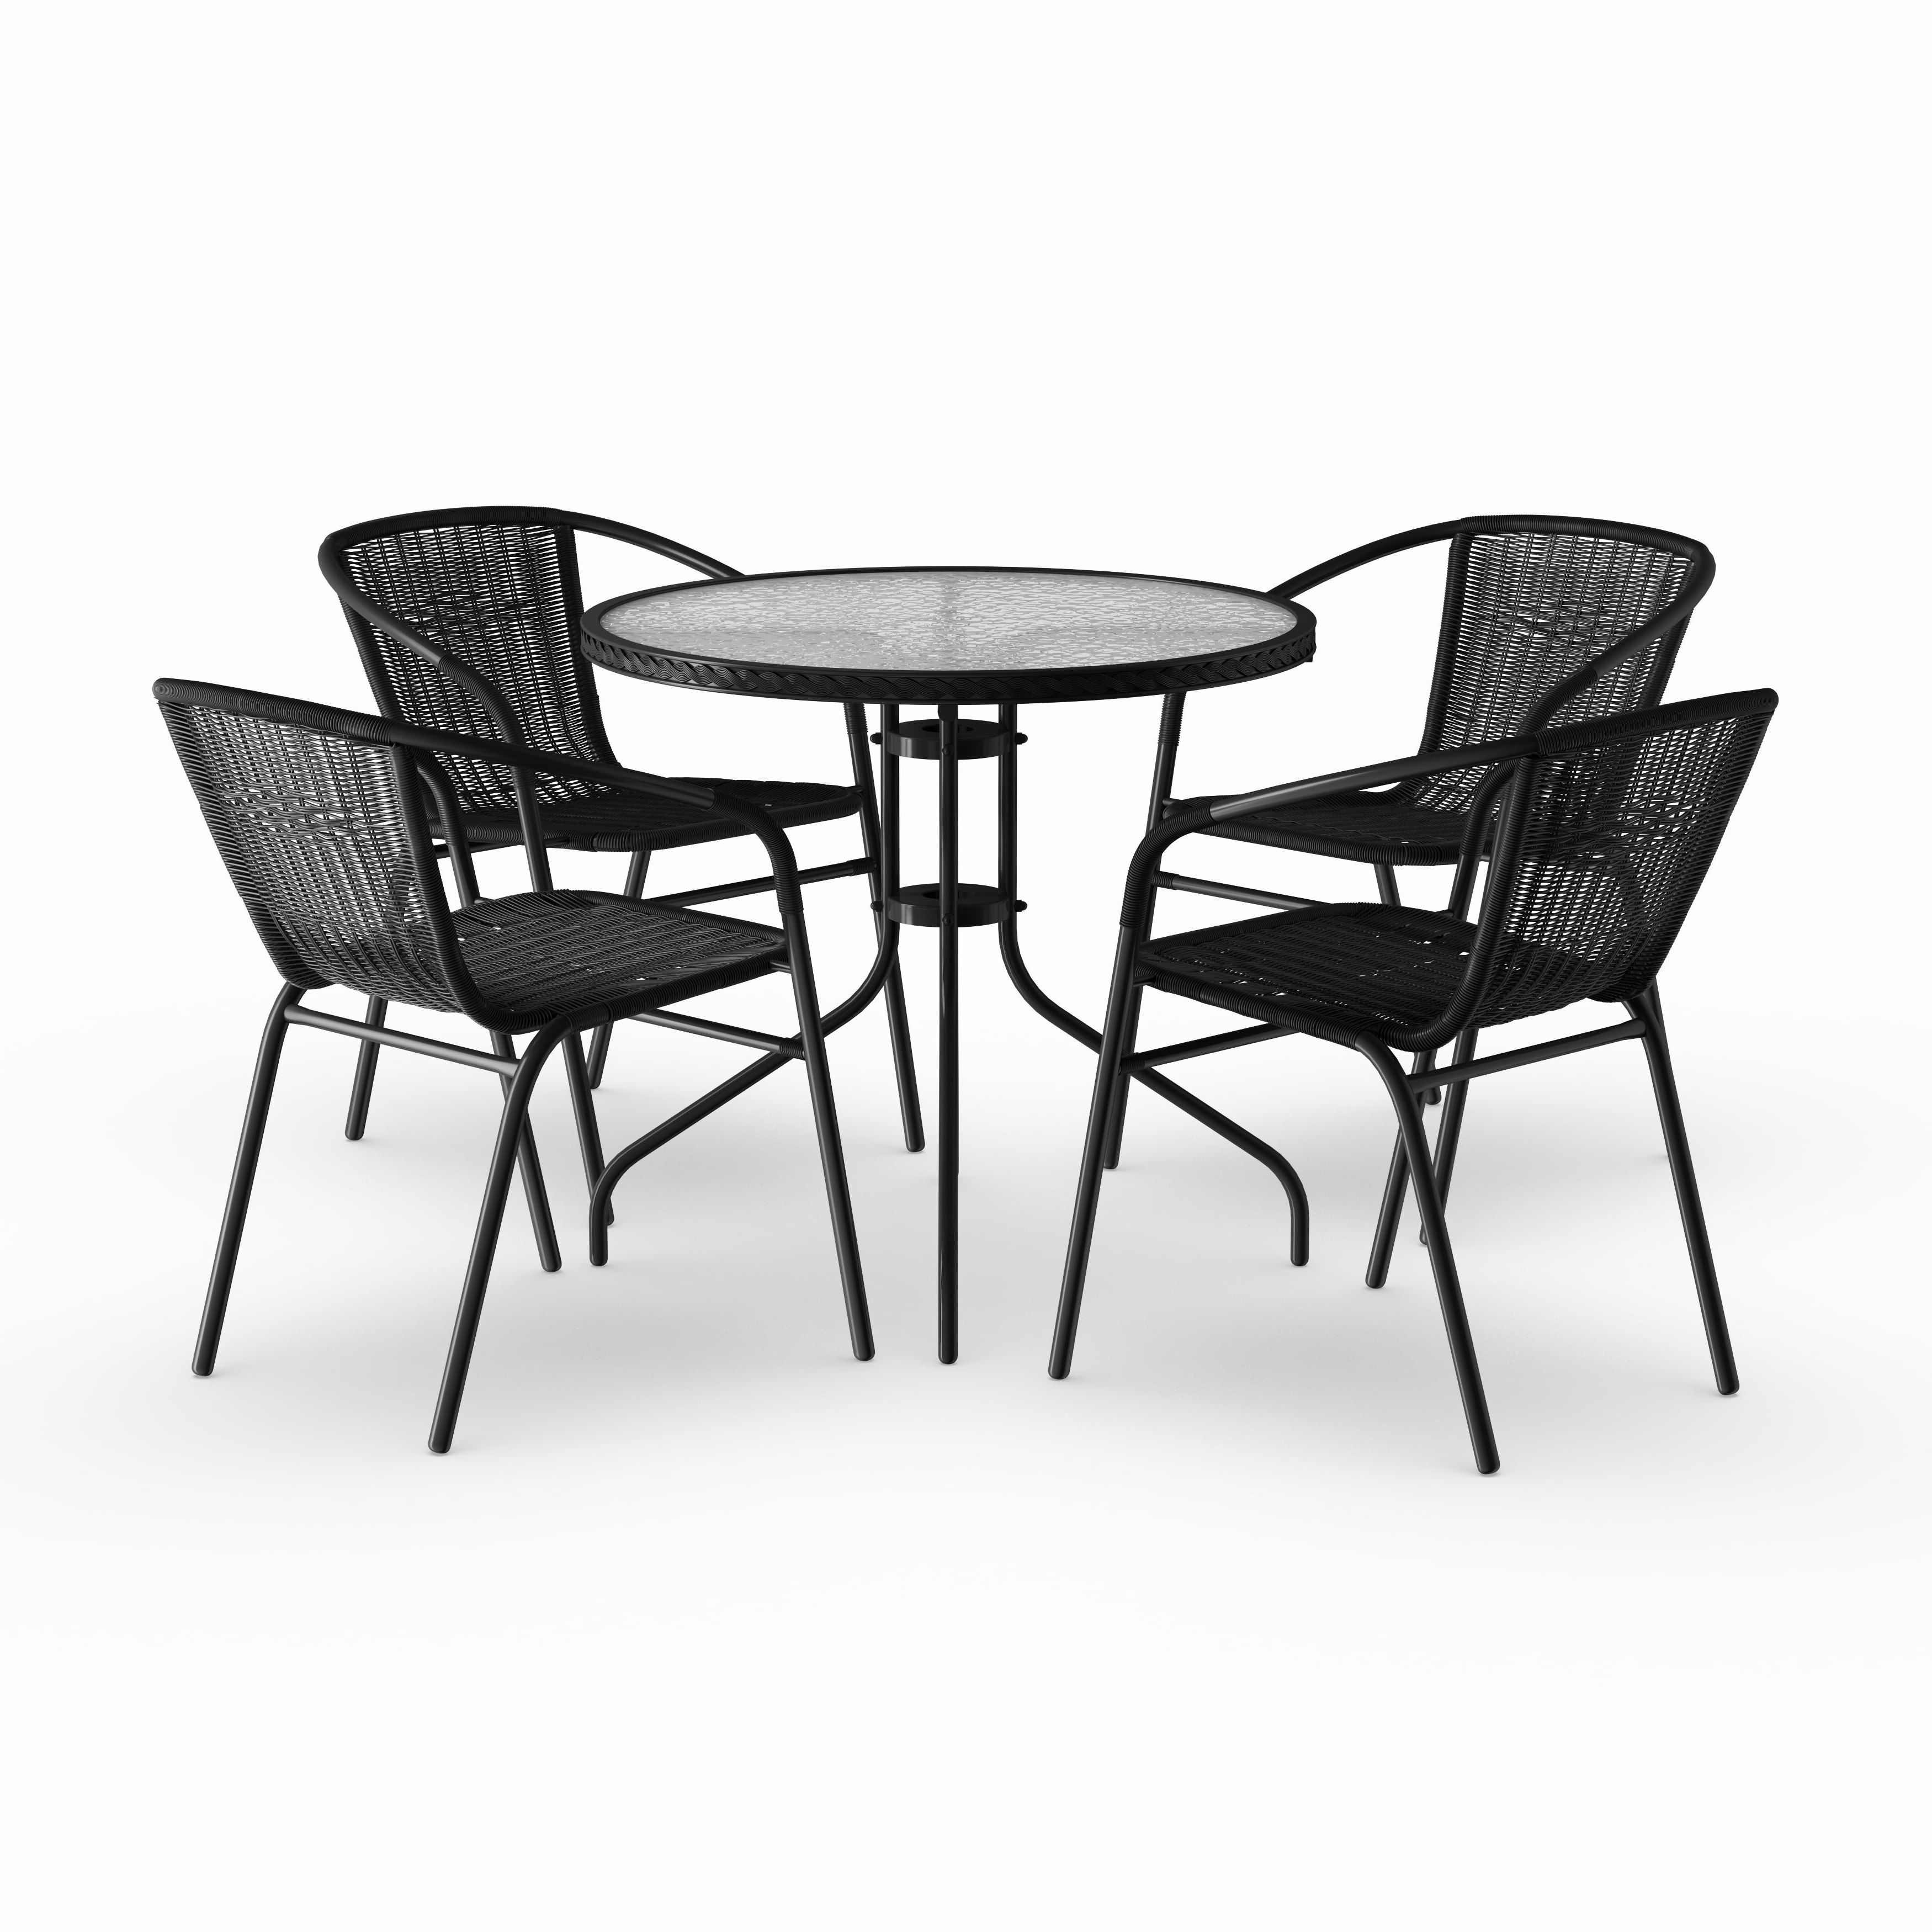 Most Recently Released Debby Small Space 3 Piece Dining Sets Inside Havenside Home Bellport 5 Piece Round Metal/ Glass Table With Rattan Chairs  Set (View 15 of 25)